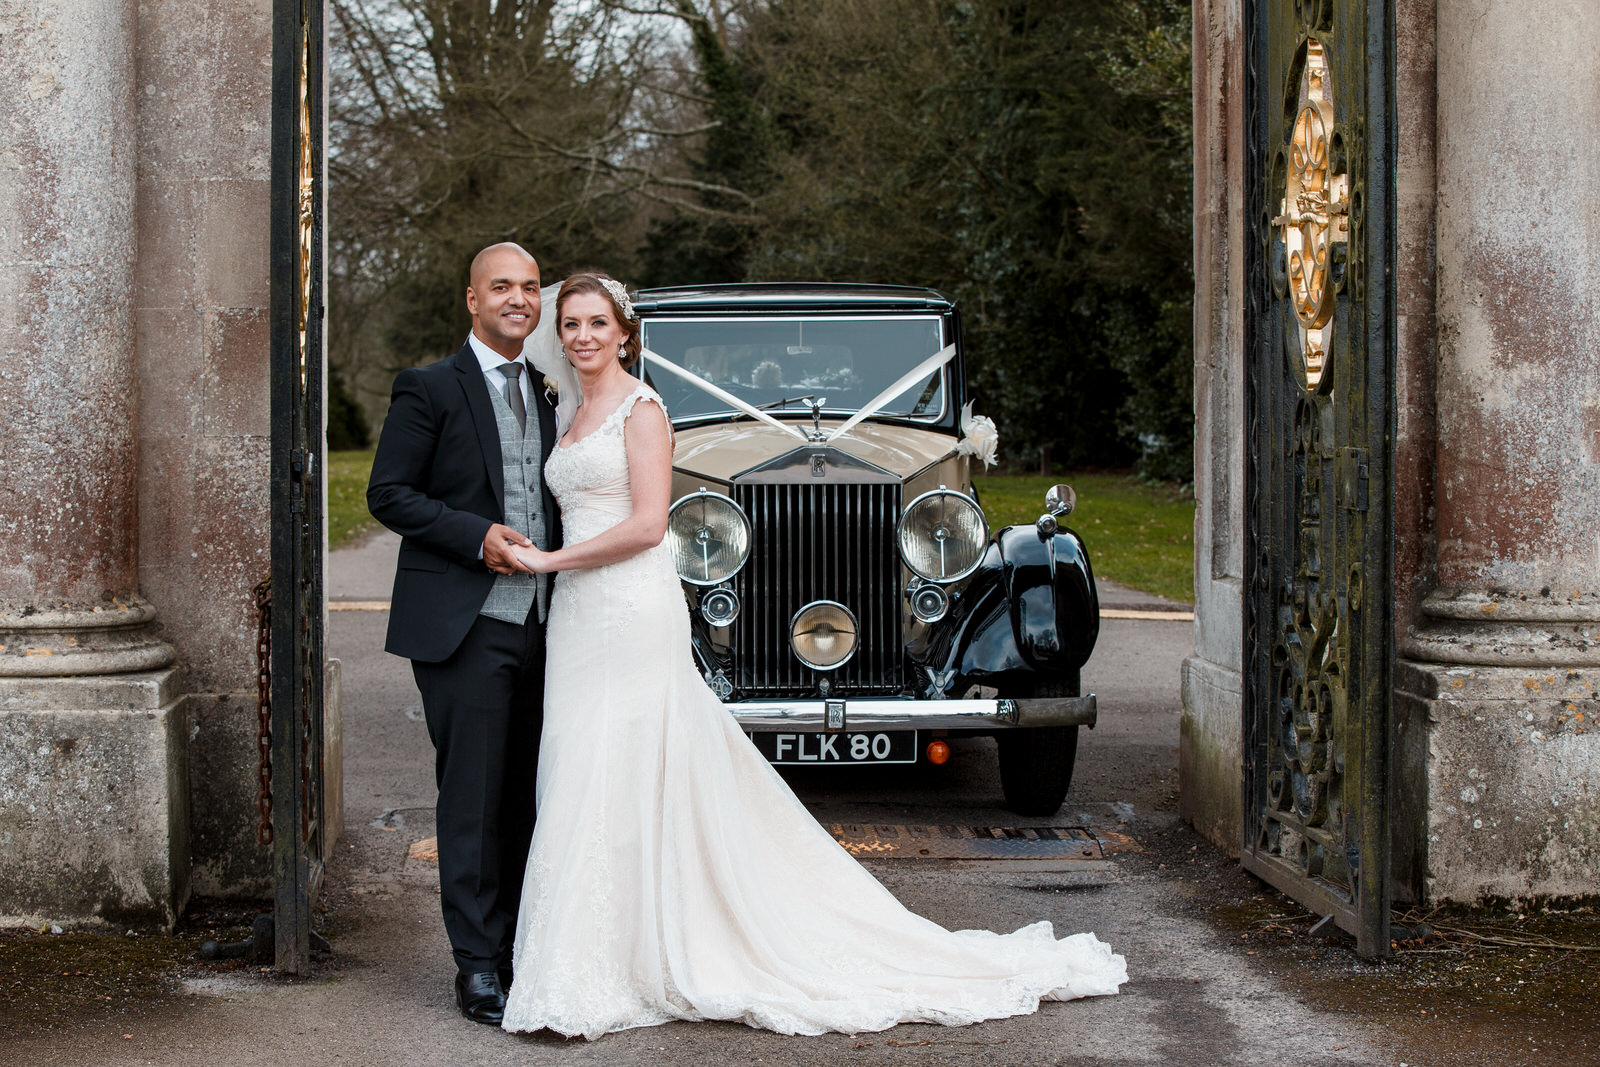 photograph at gates of bowood hotel wedding